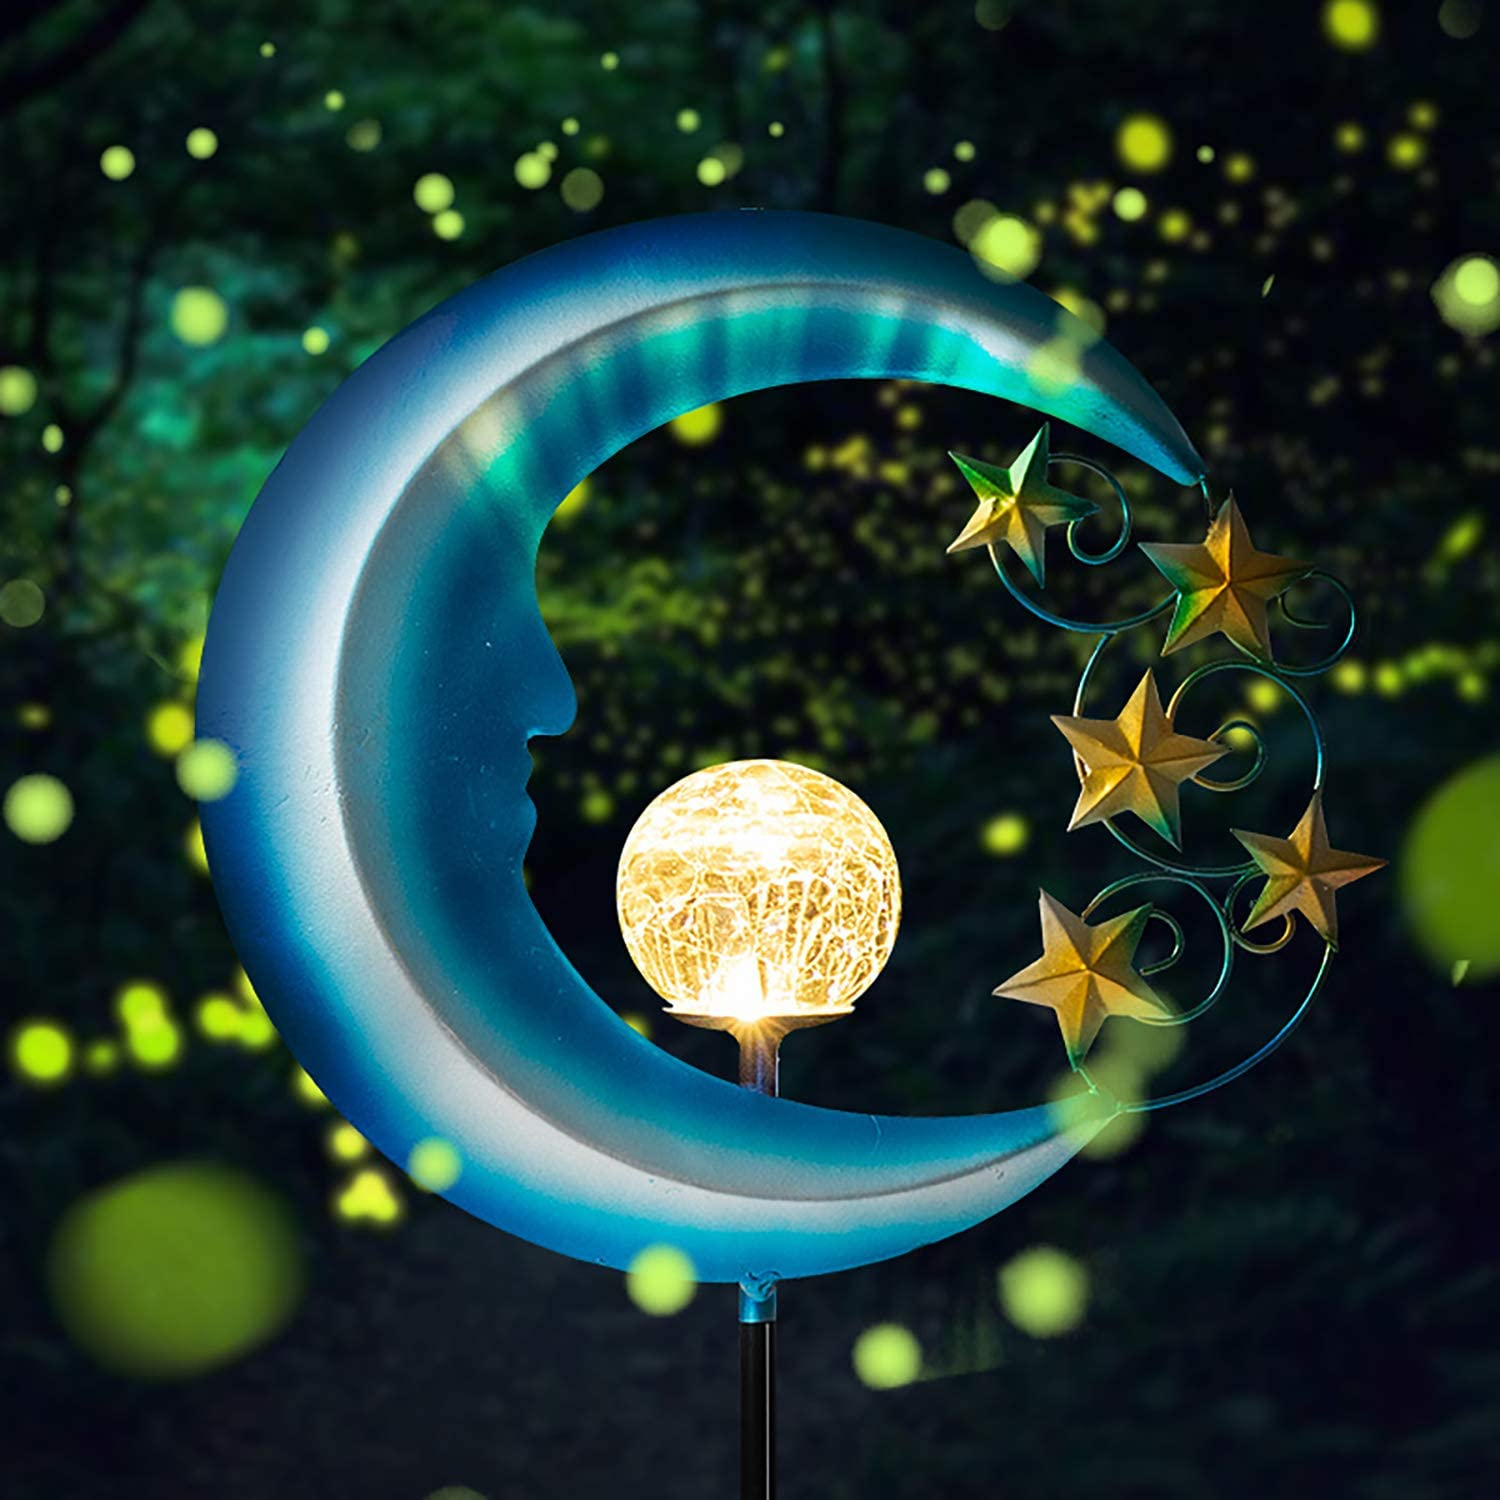 Solar Powered Garden Lights -  Outdoor Decorative Moon Light - Metal Waterproof Solar Garden Light for Pathway, Lawn, Patio, Yard